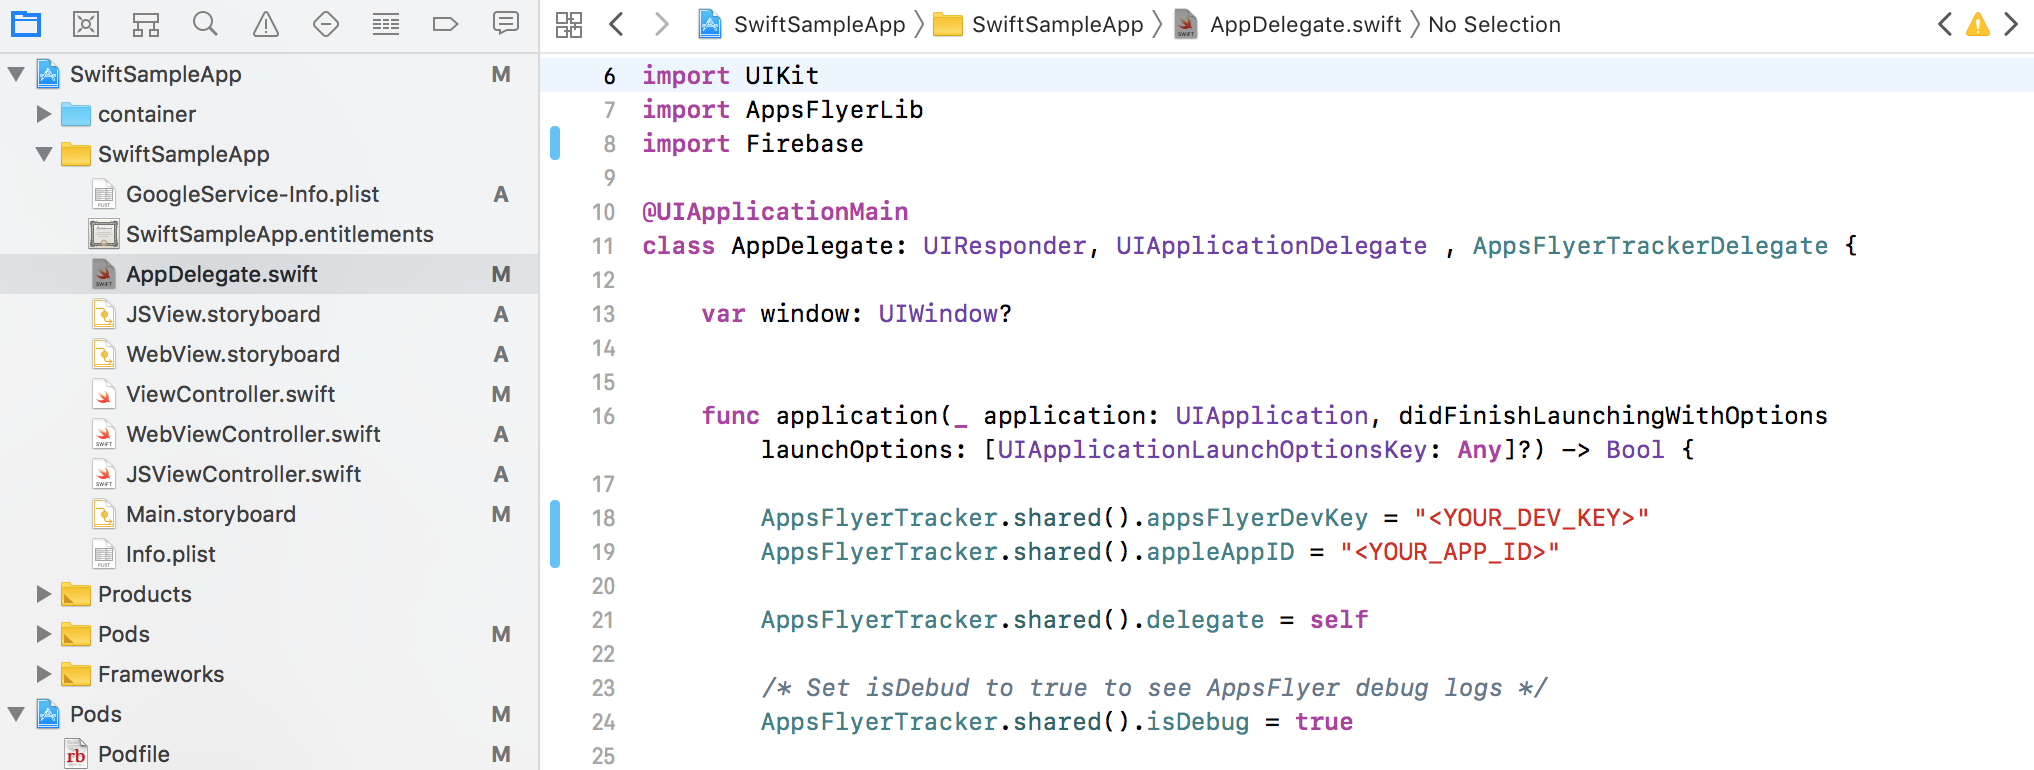 iOS SDK integration for developers – Help Center